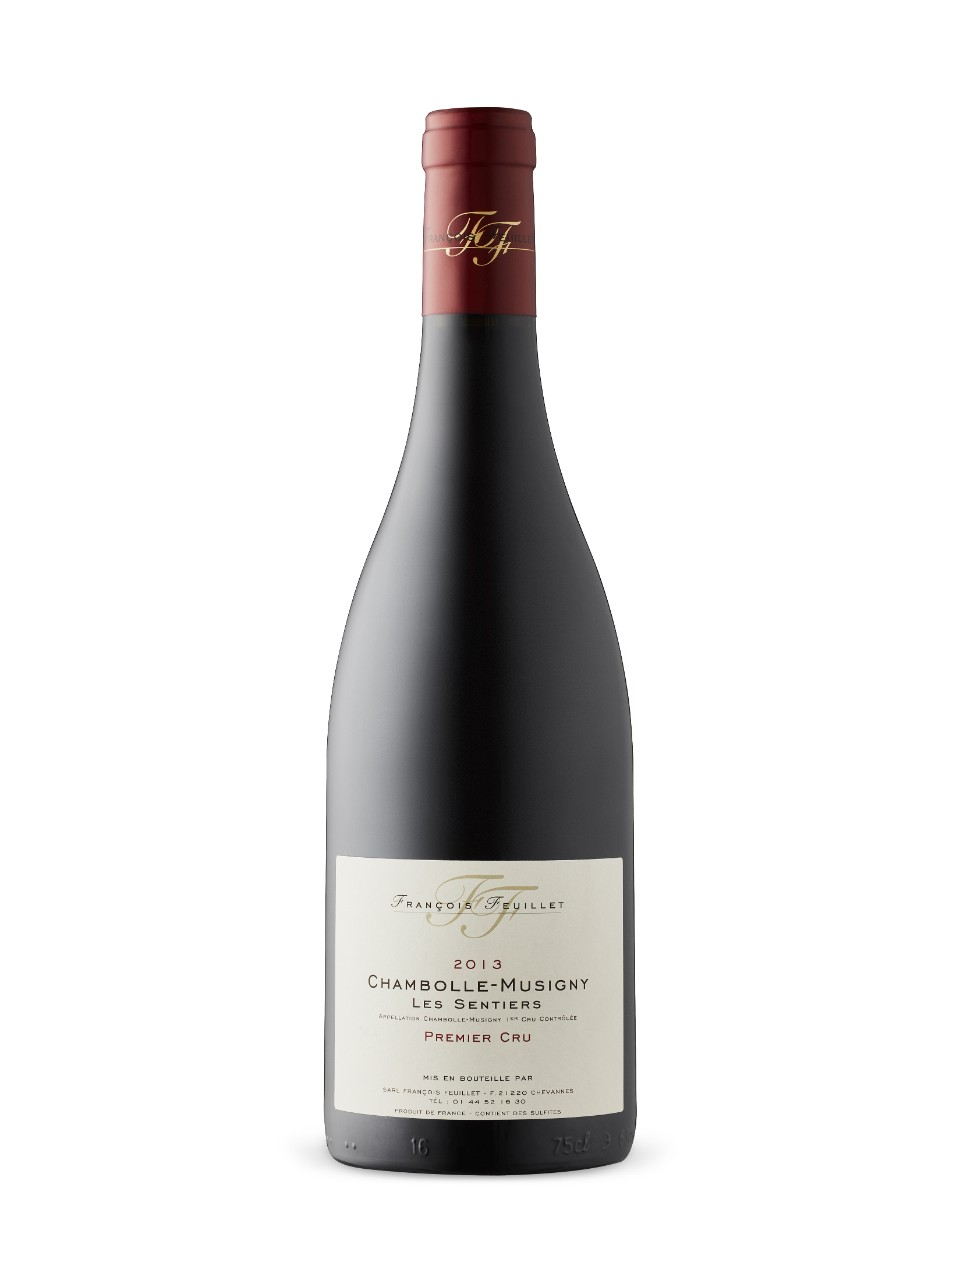 Domaine Francois Feuillet Chambolle Musigny 1er cru Les Sentiers 2013 from LCBO